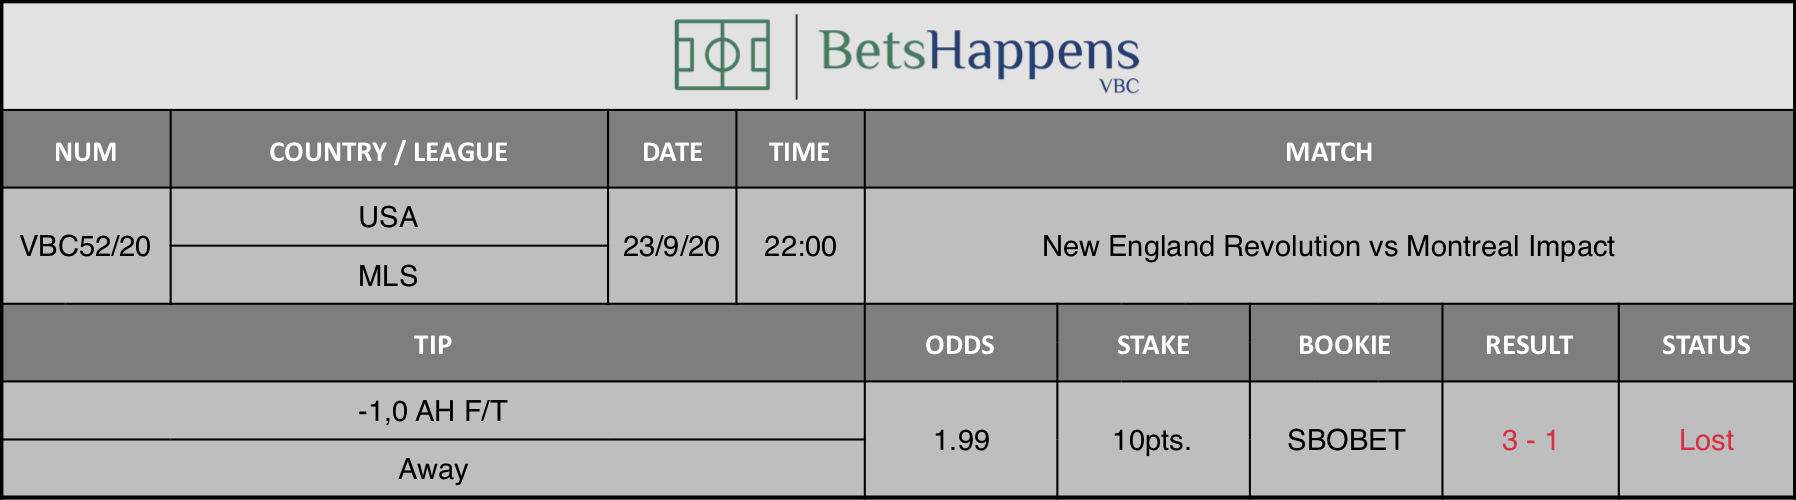 Results of our advice for the New England Revolution vs Montreal Impact game where -1.0 AH F / T Away is recommended.